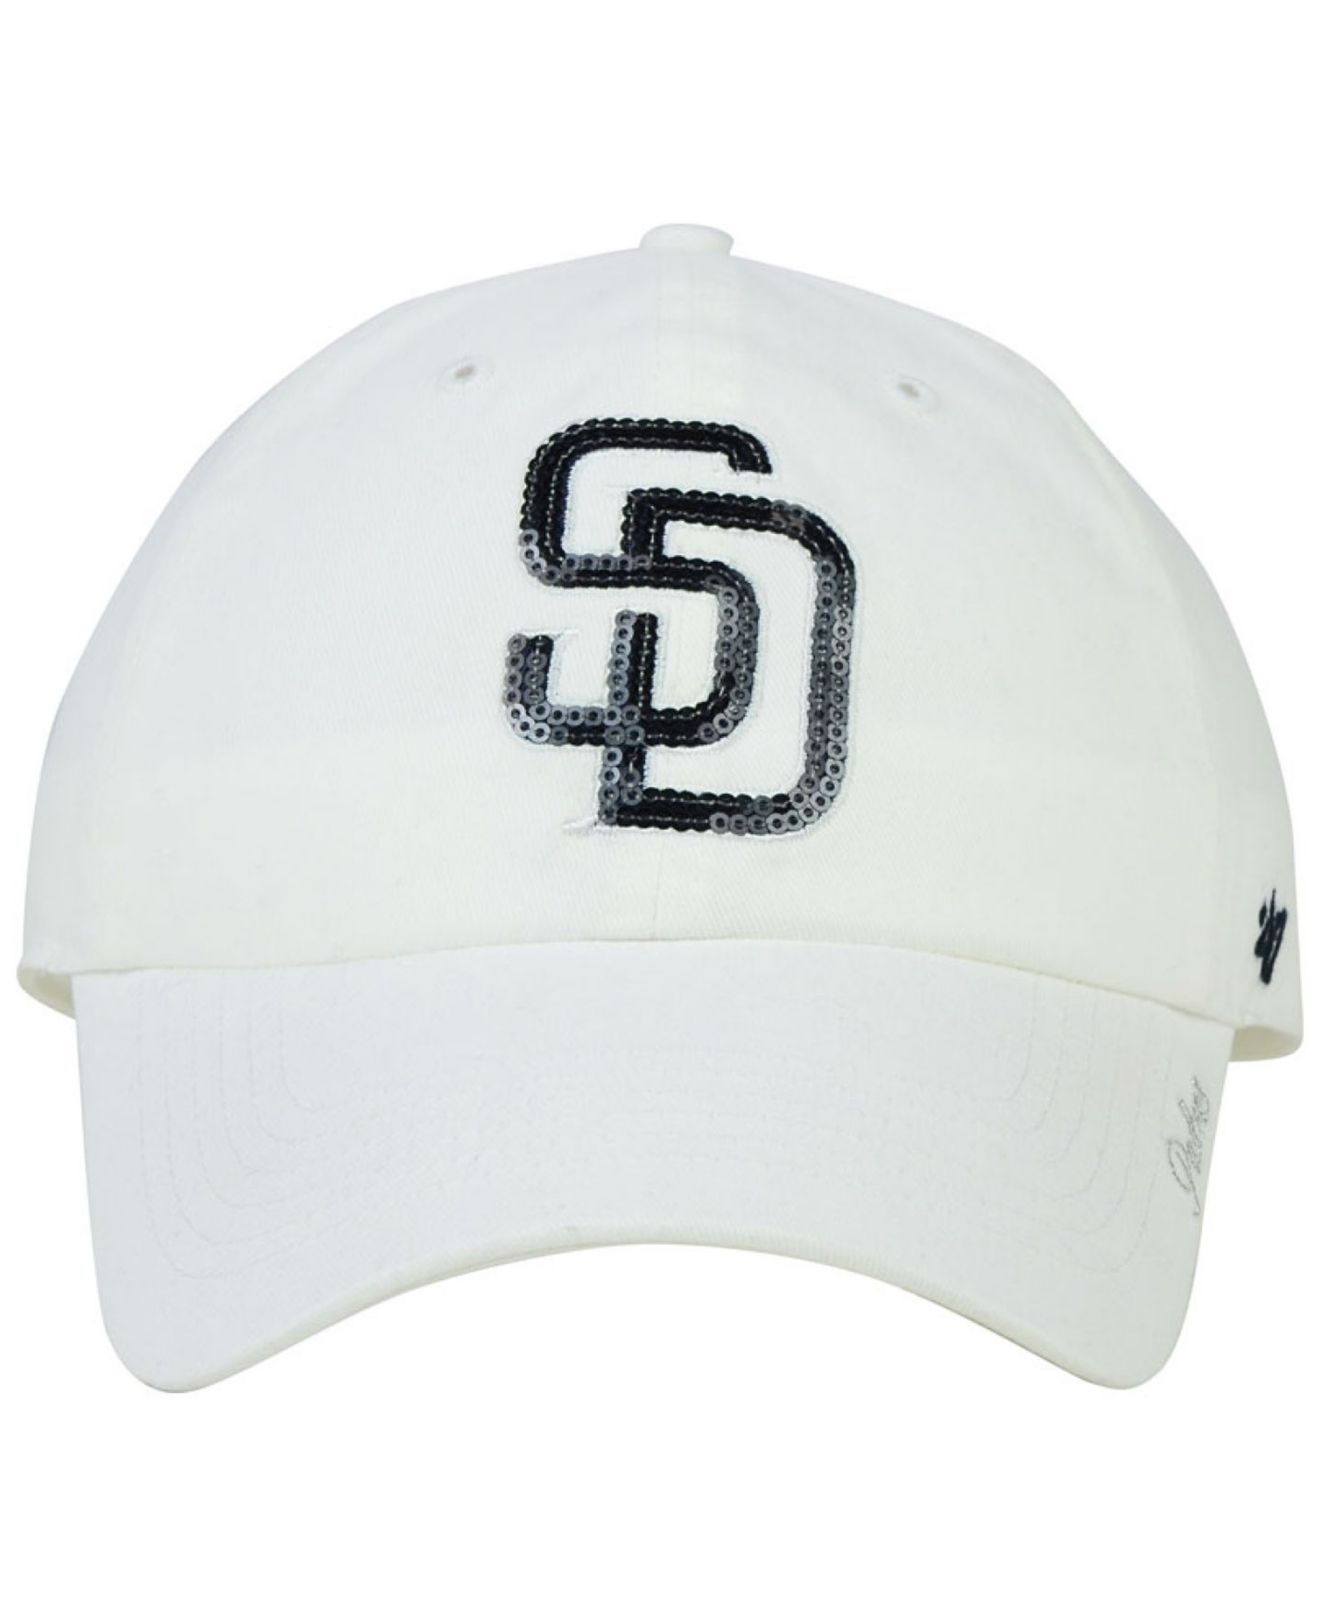 outlet store 0b10d 8e248 47 Brand Women s San Diego Padres Adjustable Clean Up Cap in White ...